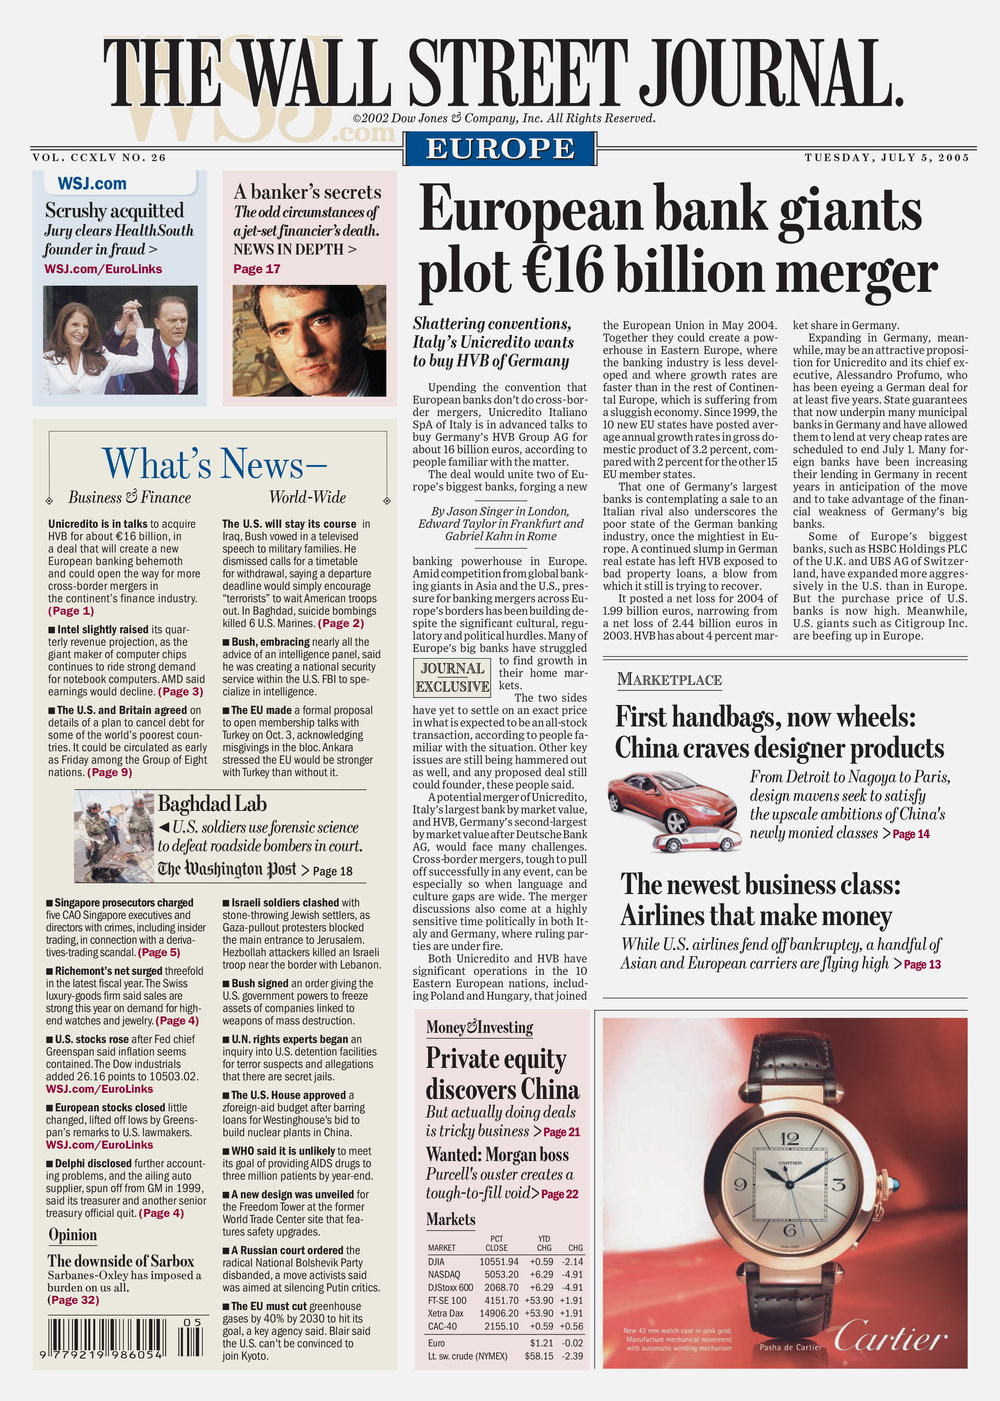 The Wall Street Journal redesign, Europe Edition. Published by Dow Jones.